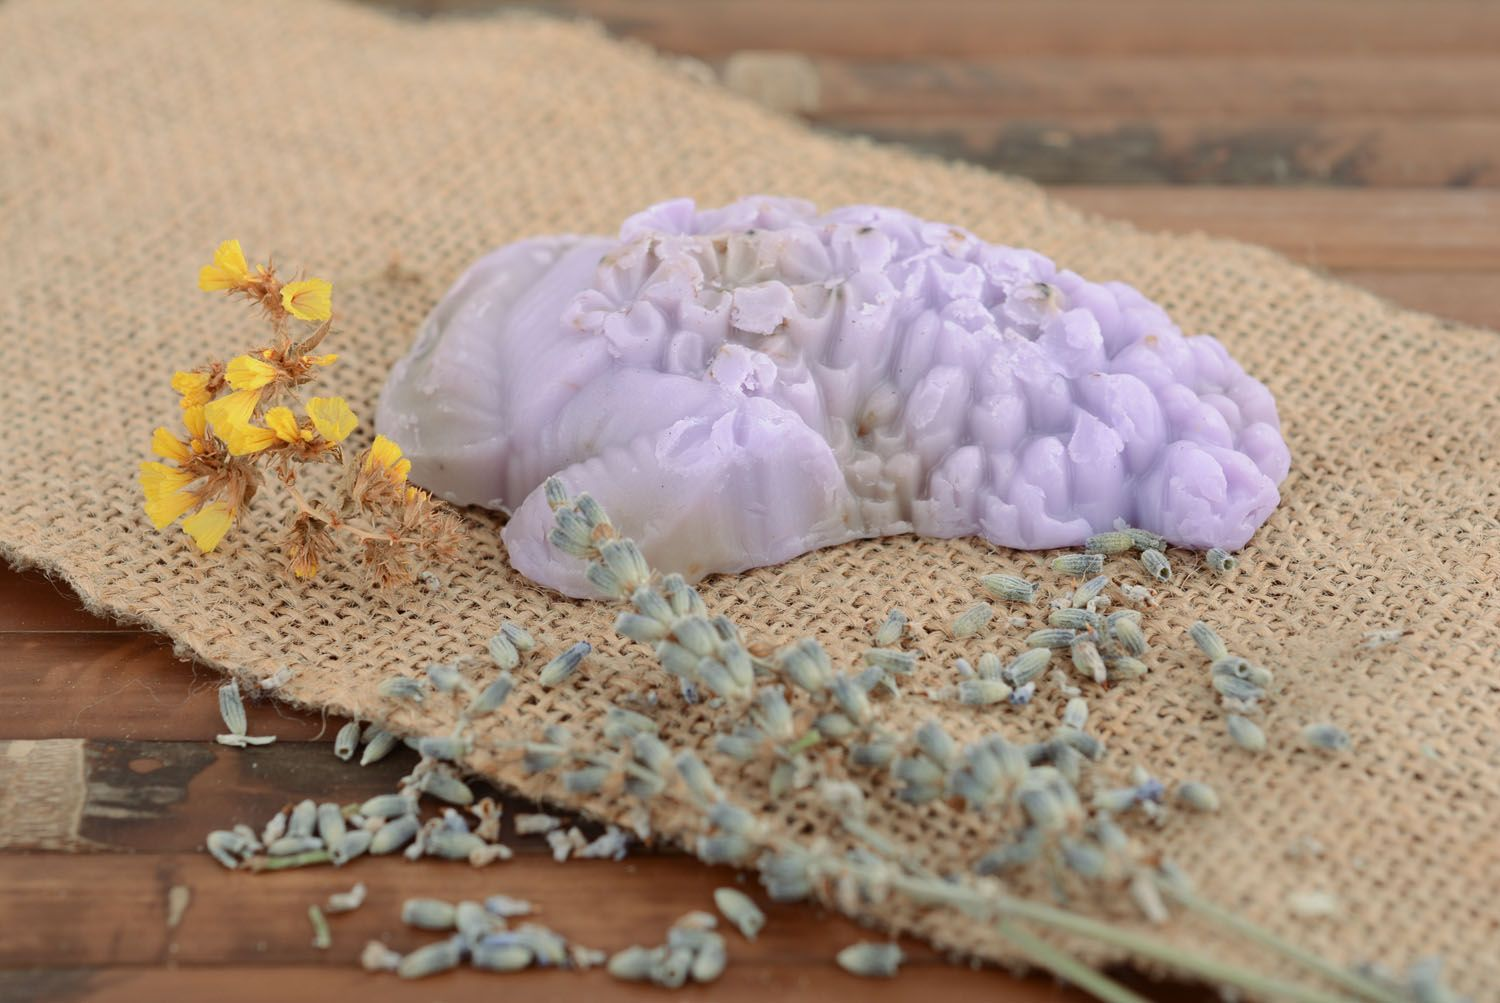 Homemade soap with lilac flowers photo 1